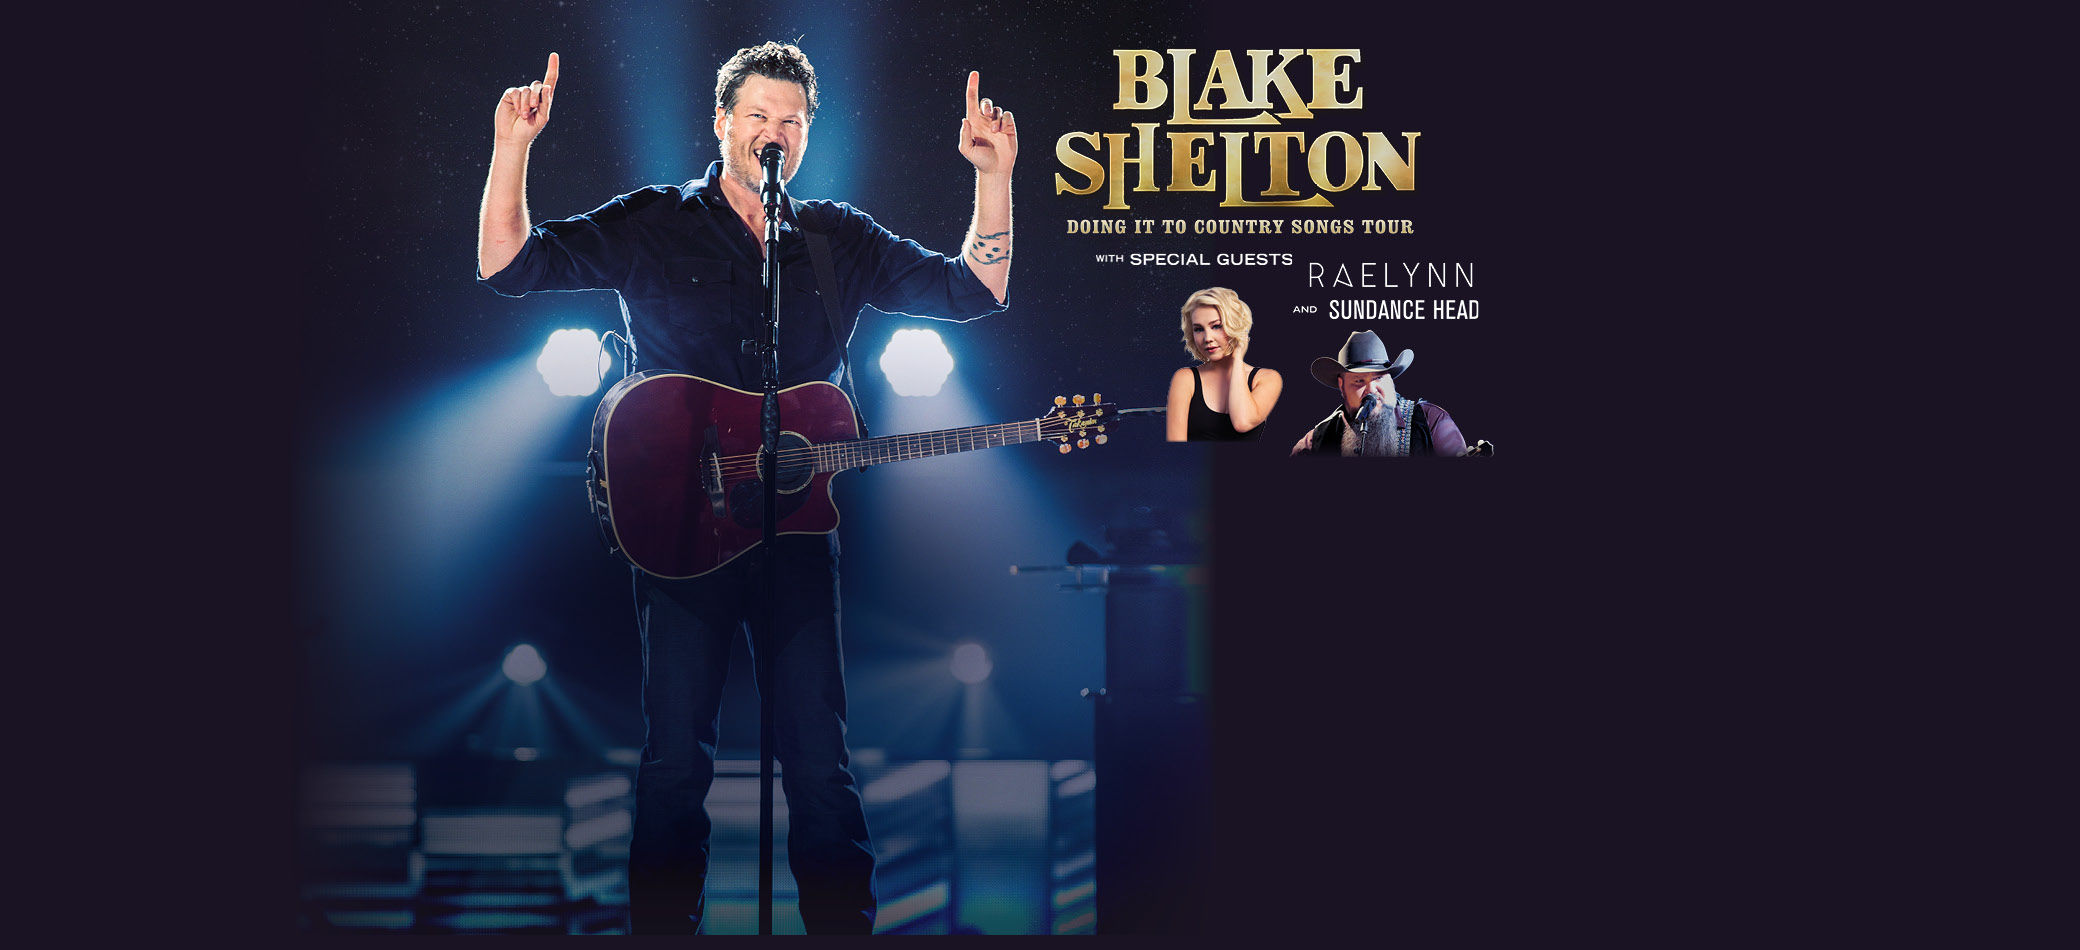 Blake Shelton Doing It To Country Songs Tour 2017